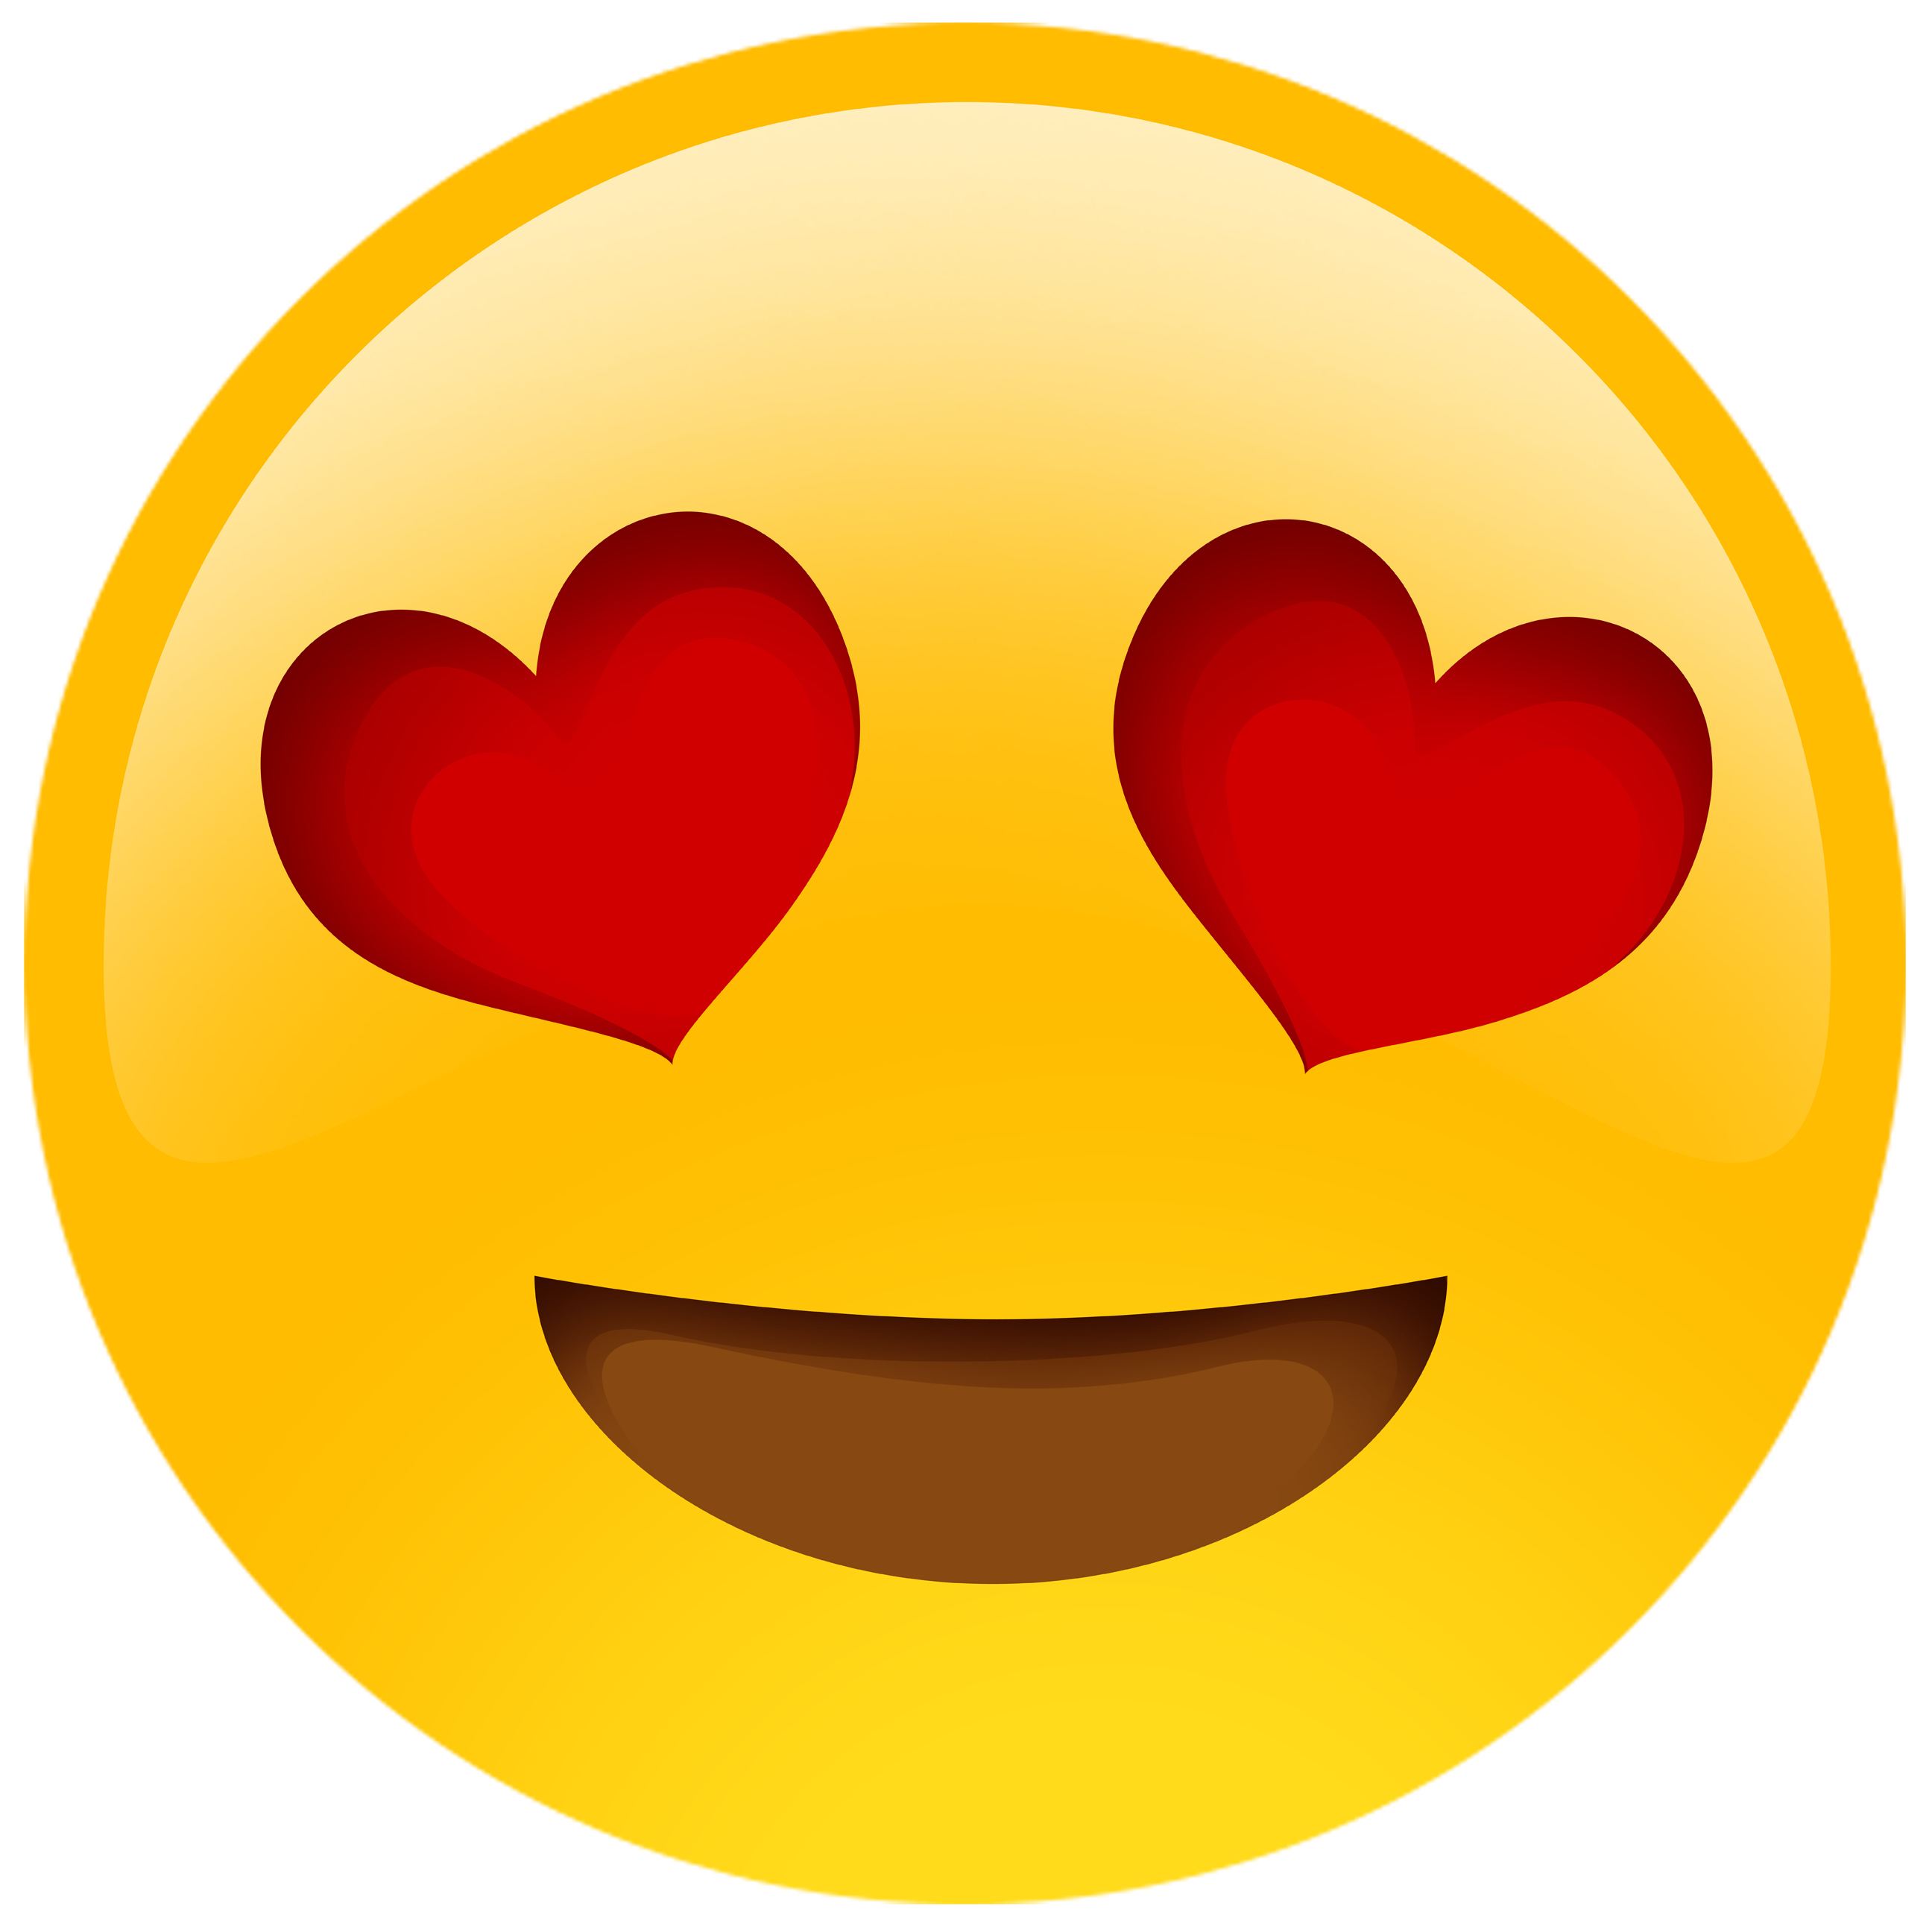 Images snapchat emojis red heart page 3